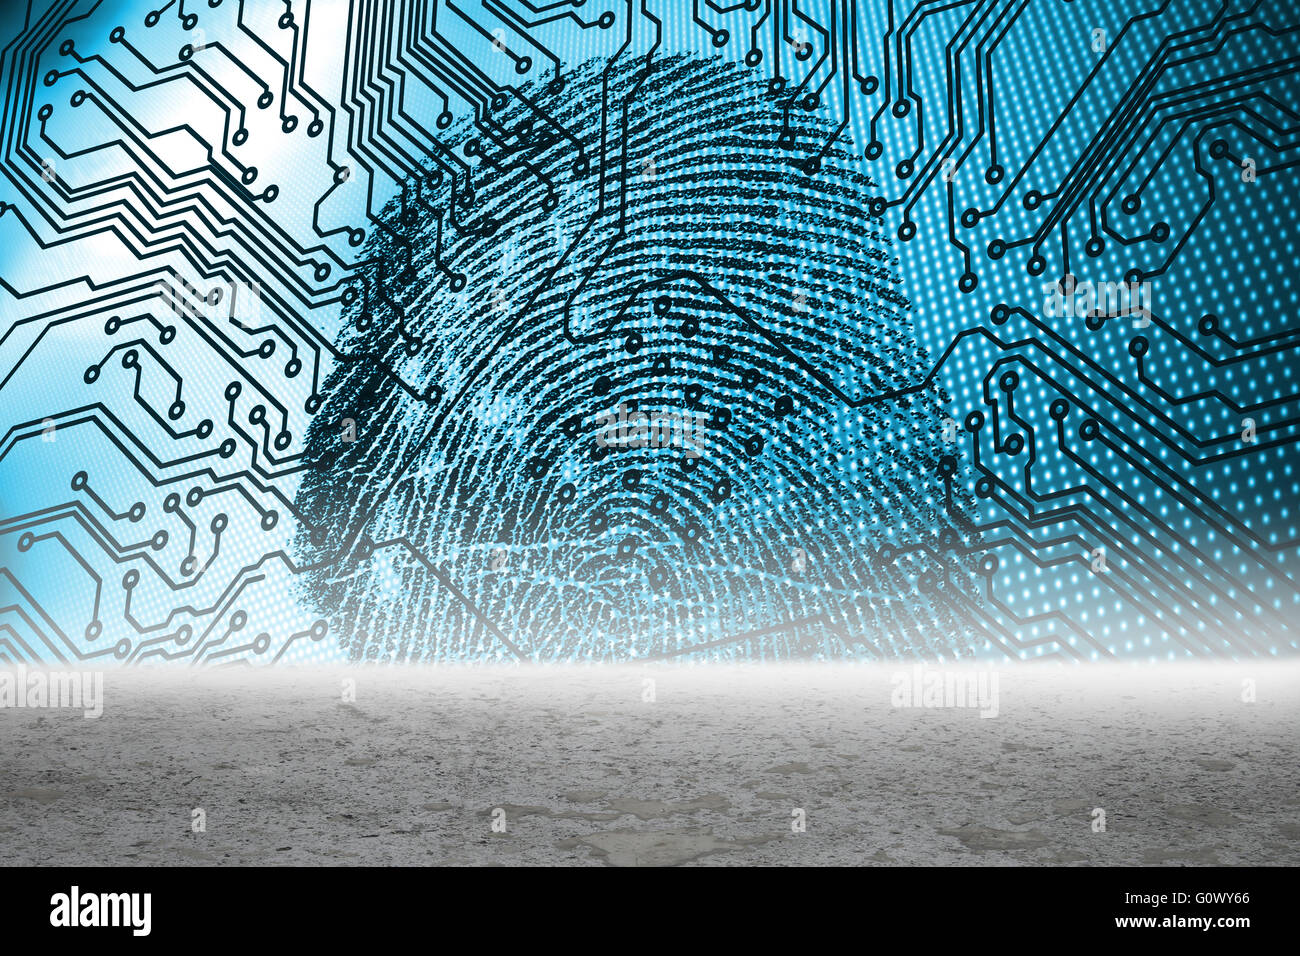 Fingerprint with circuit board graphic Stock Photo: 103832350 - Alamy